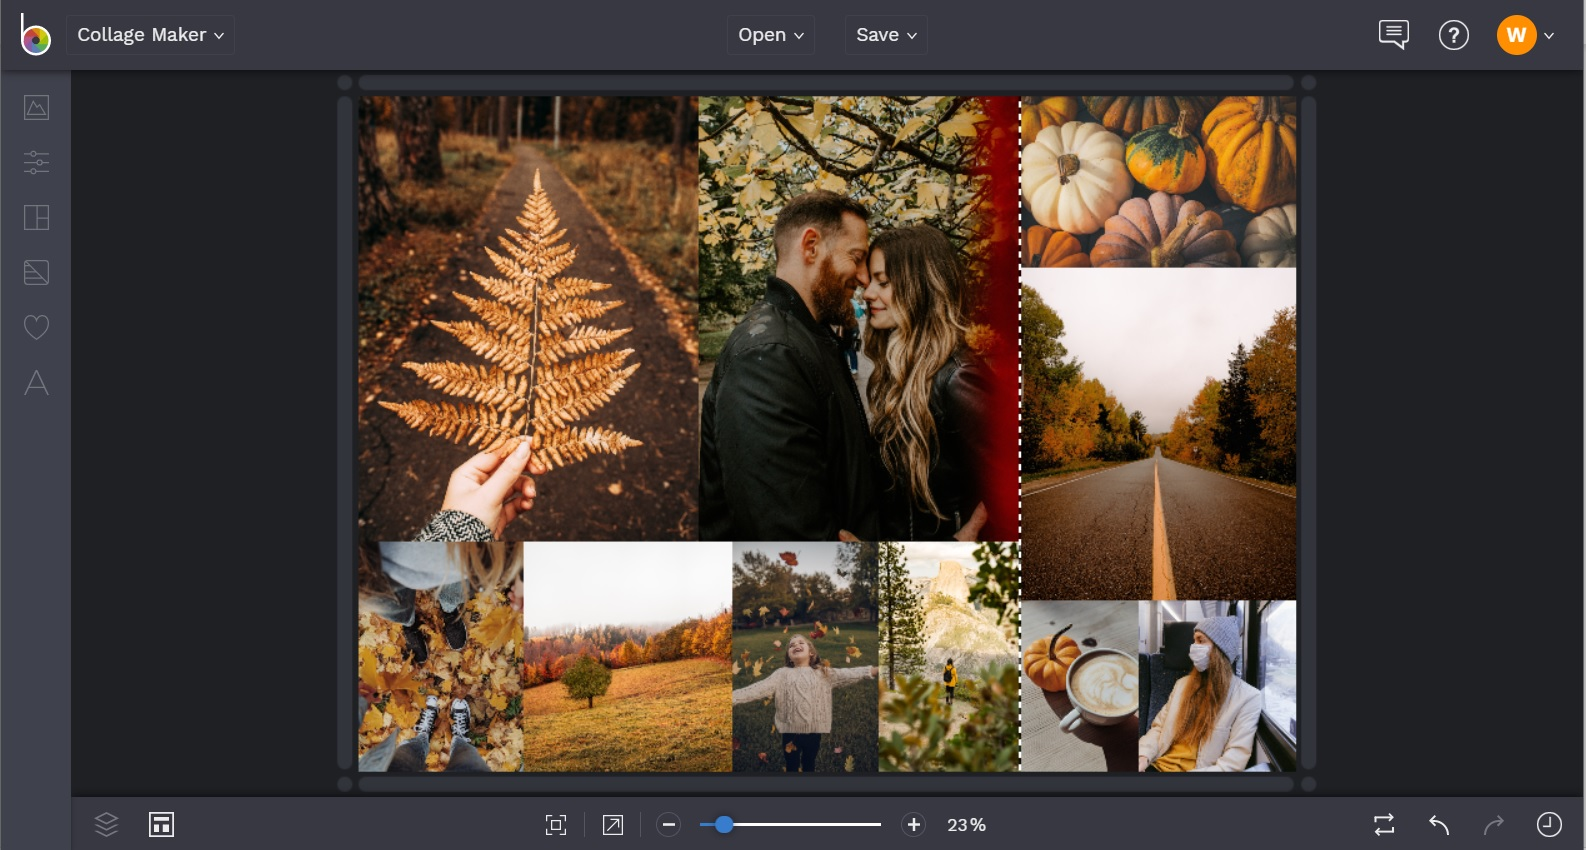 Resize your fall collage images in BeFunky